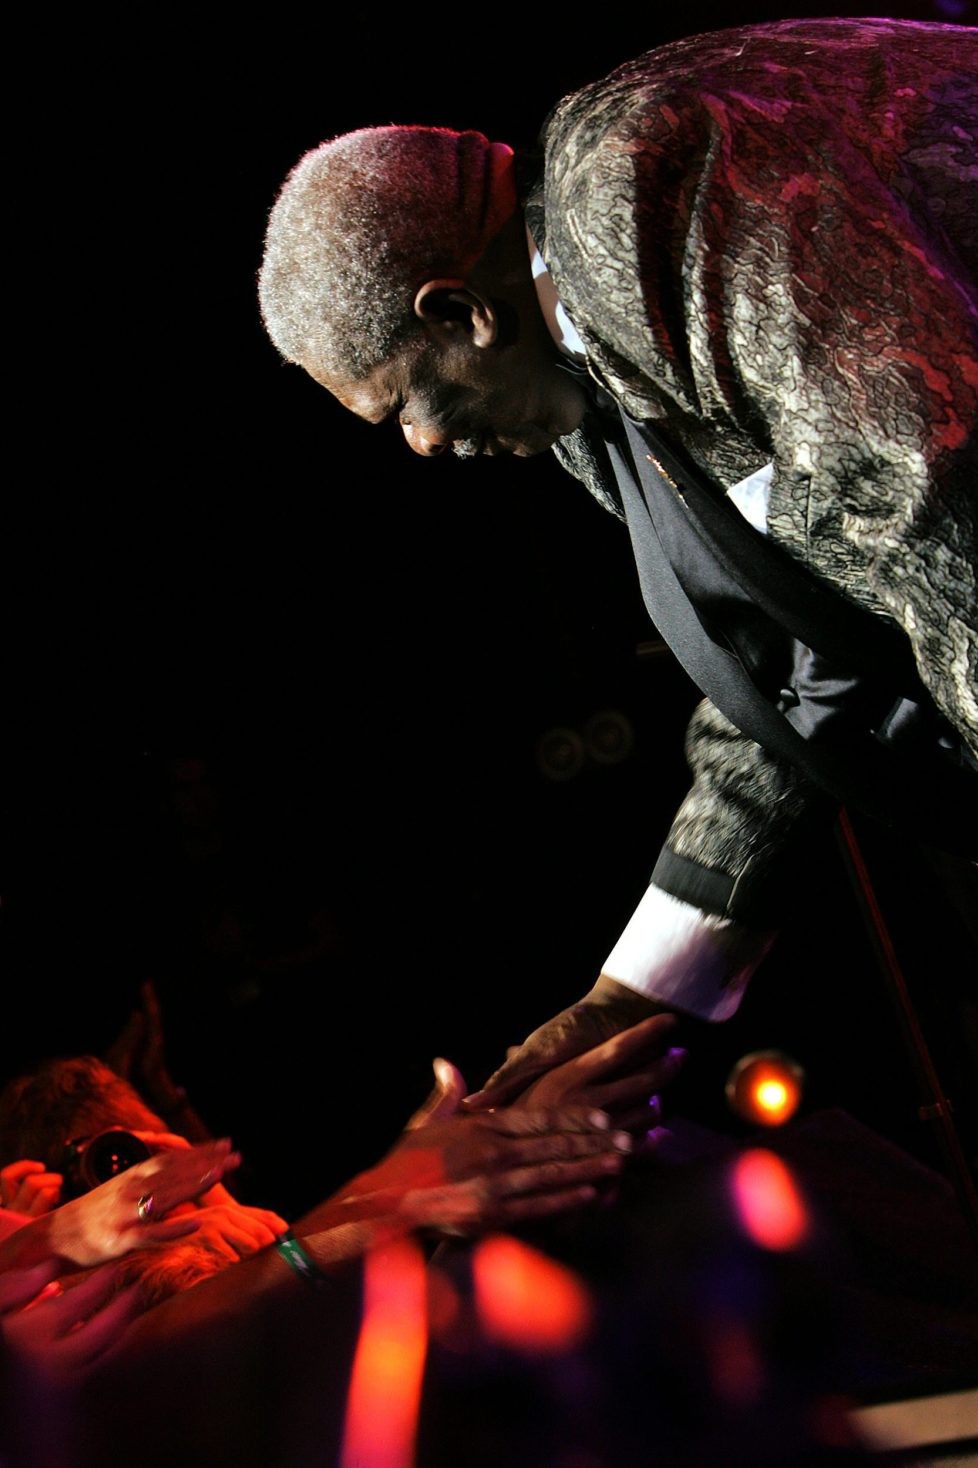 The legendary american bluesman B.B. King shakes hands with spectators after performing on the Auditorium Stravinski Hall stage during the 39th Montreux Jazz Festival in Montreux, Switzerland, late Monday, July 4, 2005. The festival will last until July 16. (KEYSTONE/Martial Trezzini)